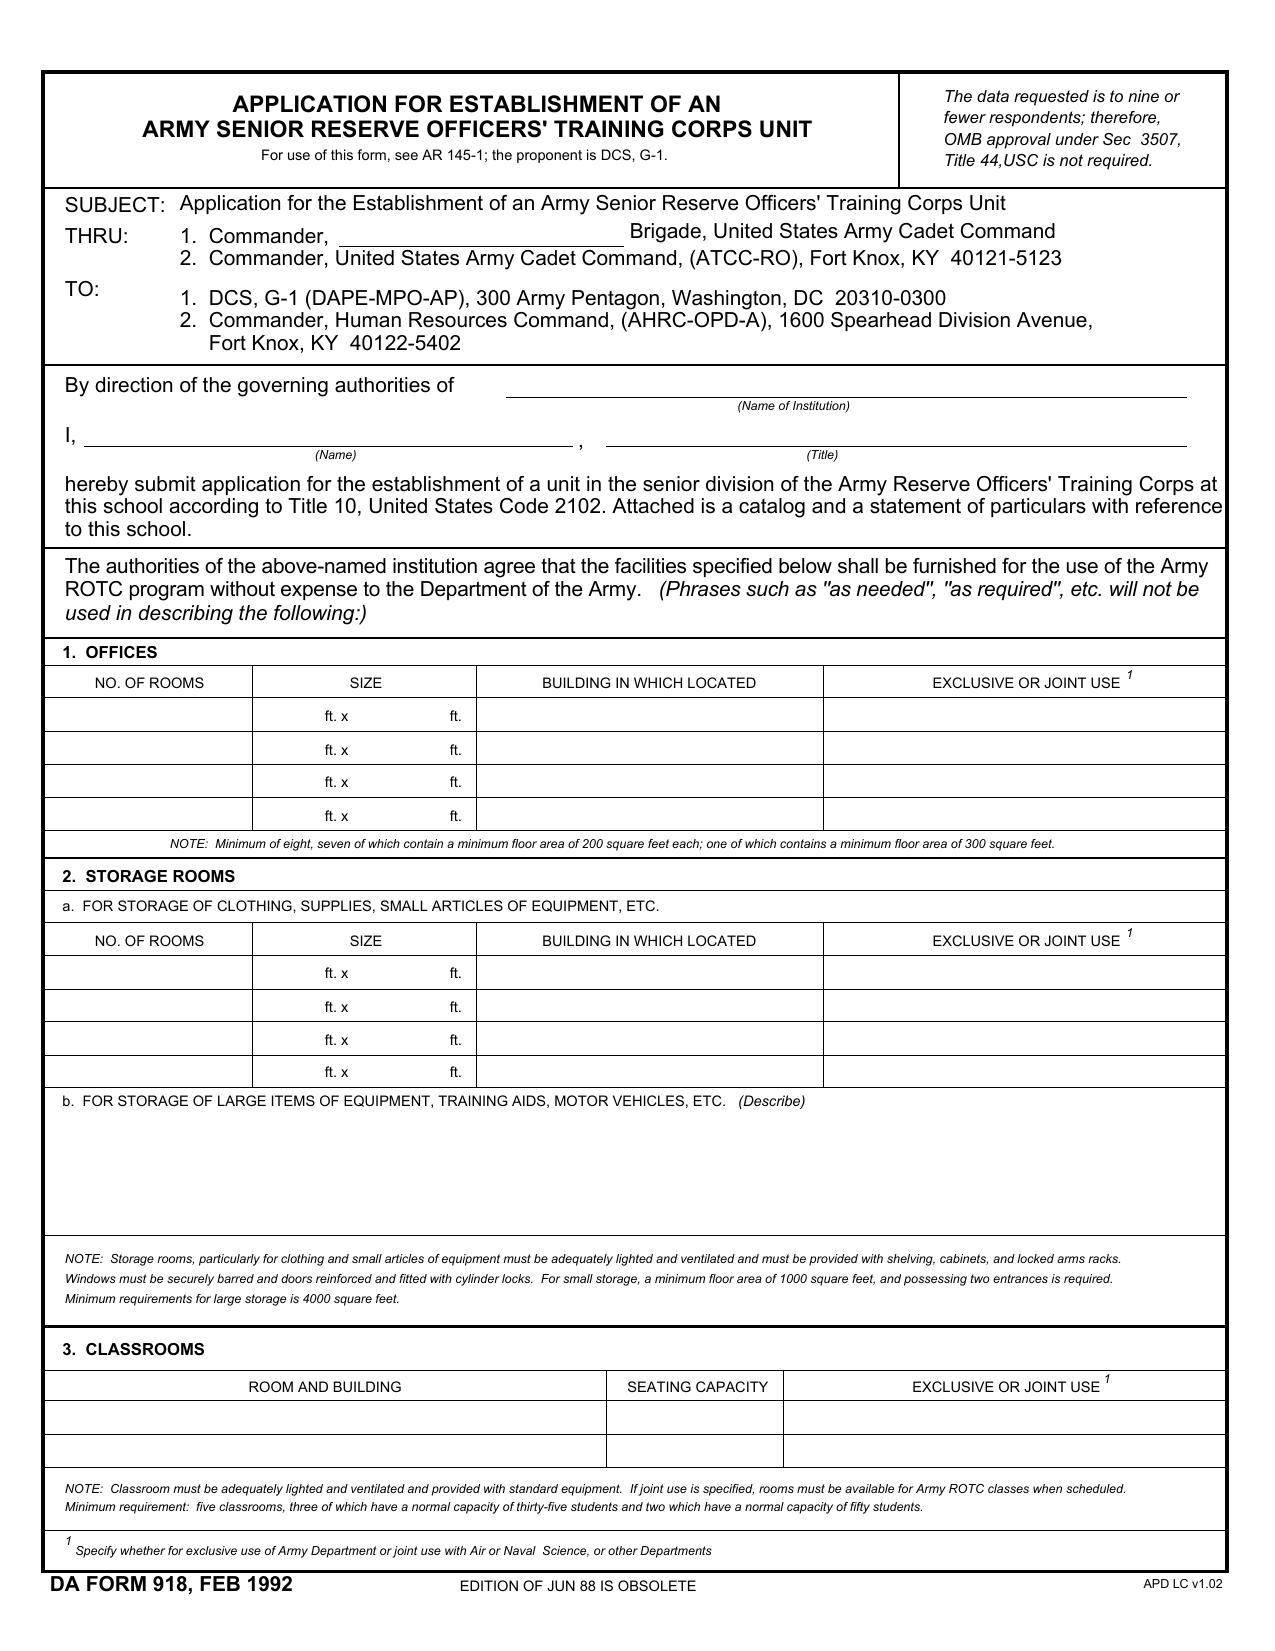 Army Form | Download Da Form 918 Application For Establishment Of An Army